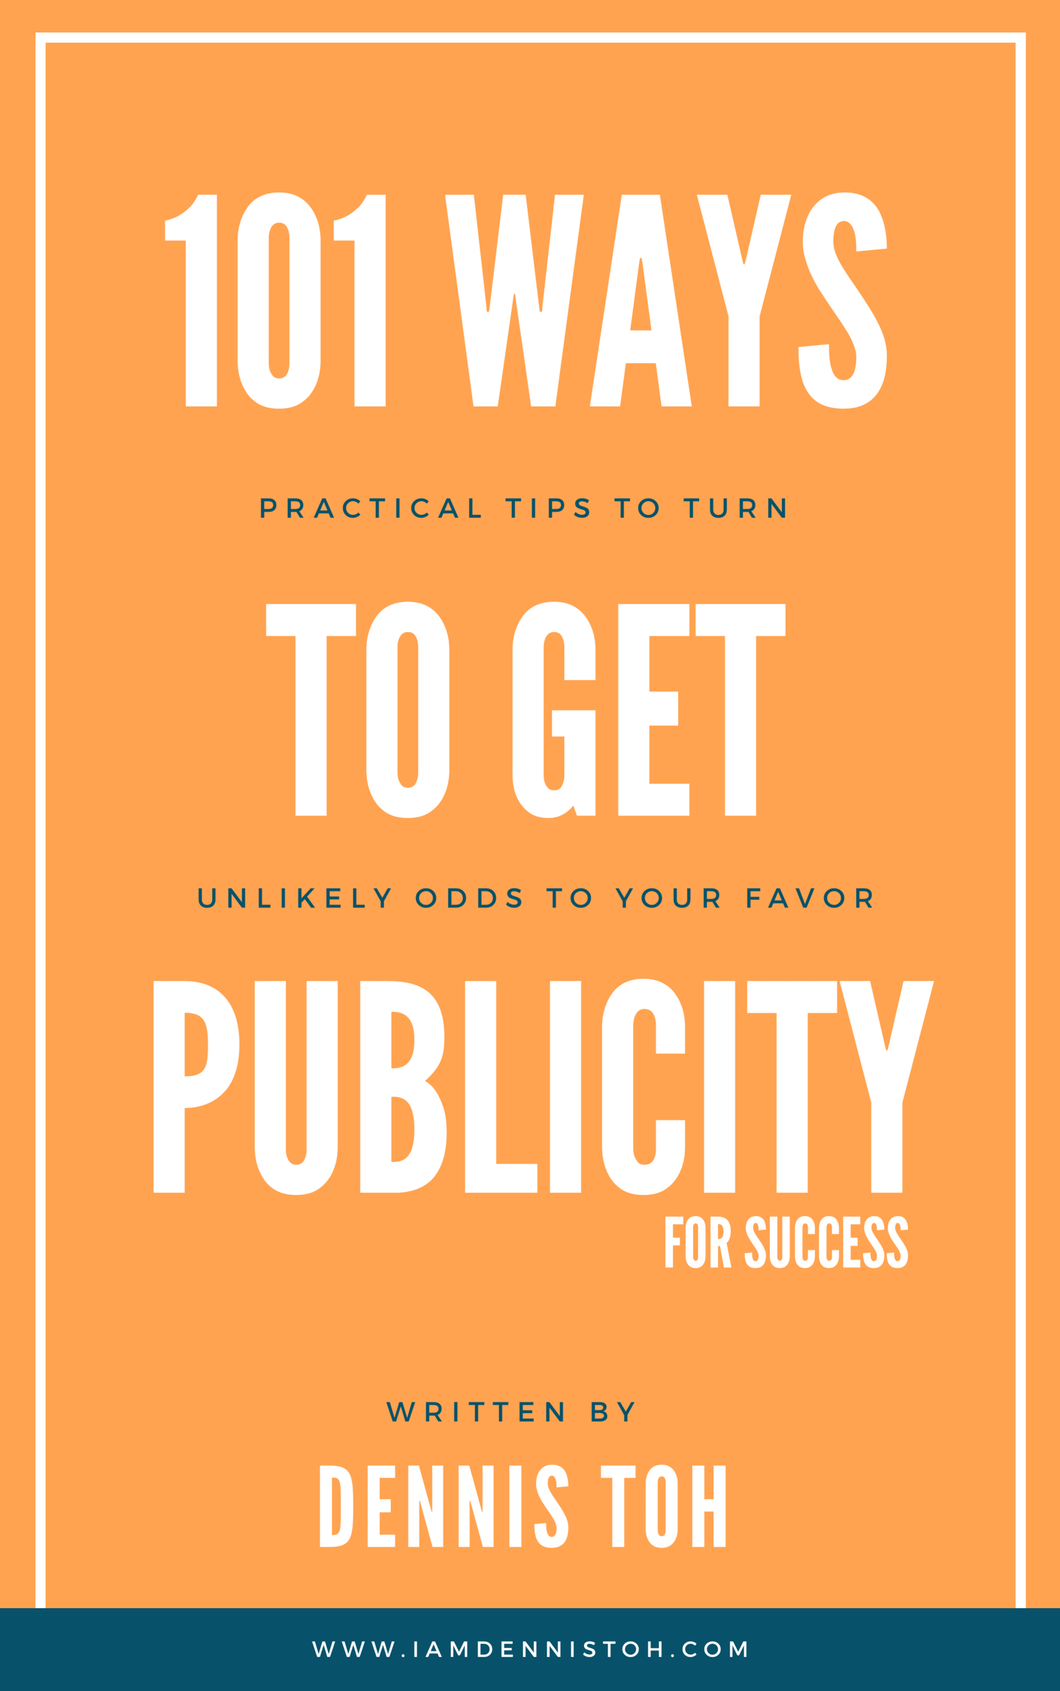 [BOOK] 101 Ways to get Publicity for Success